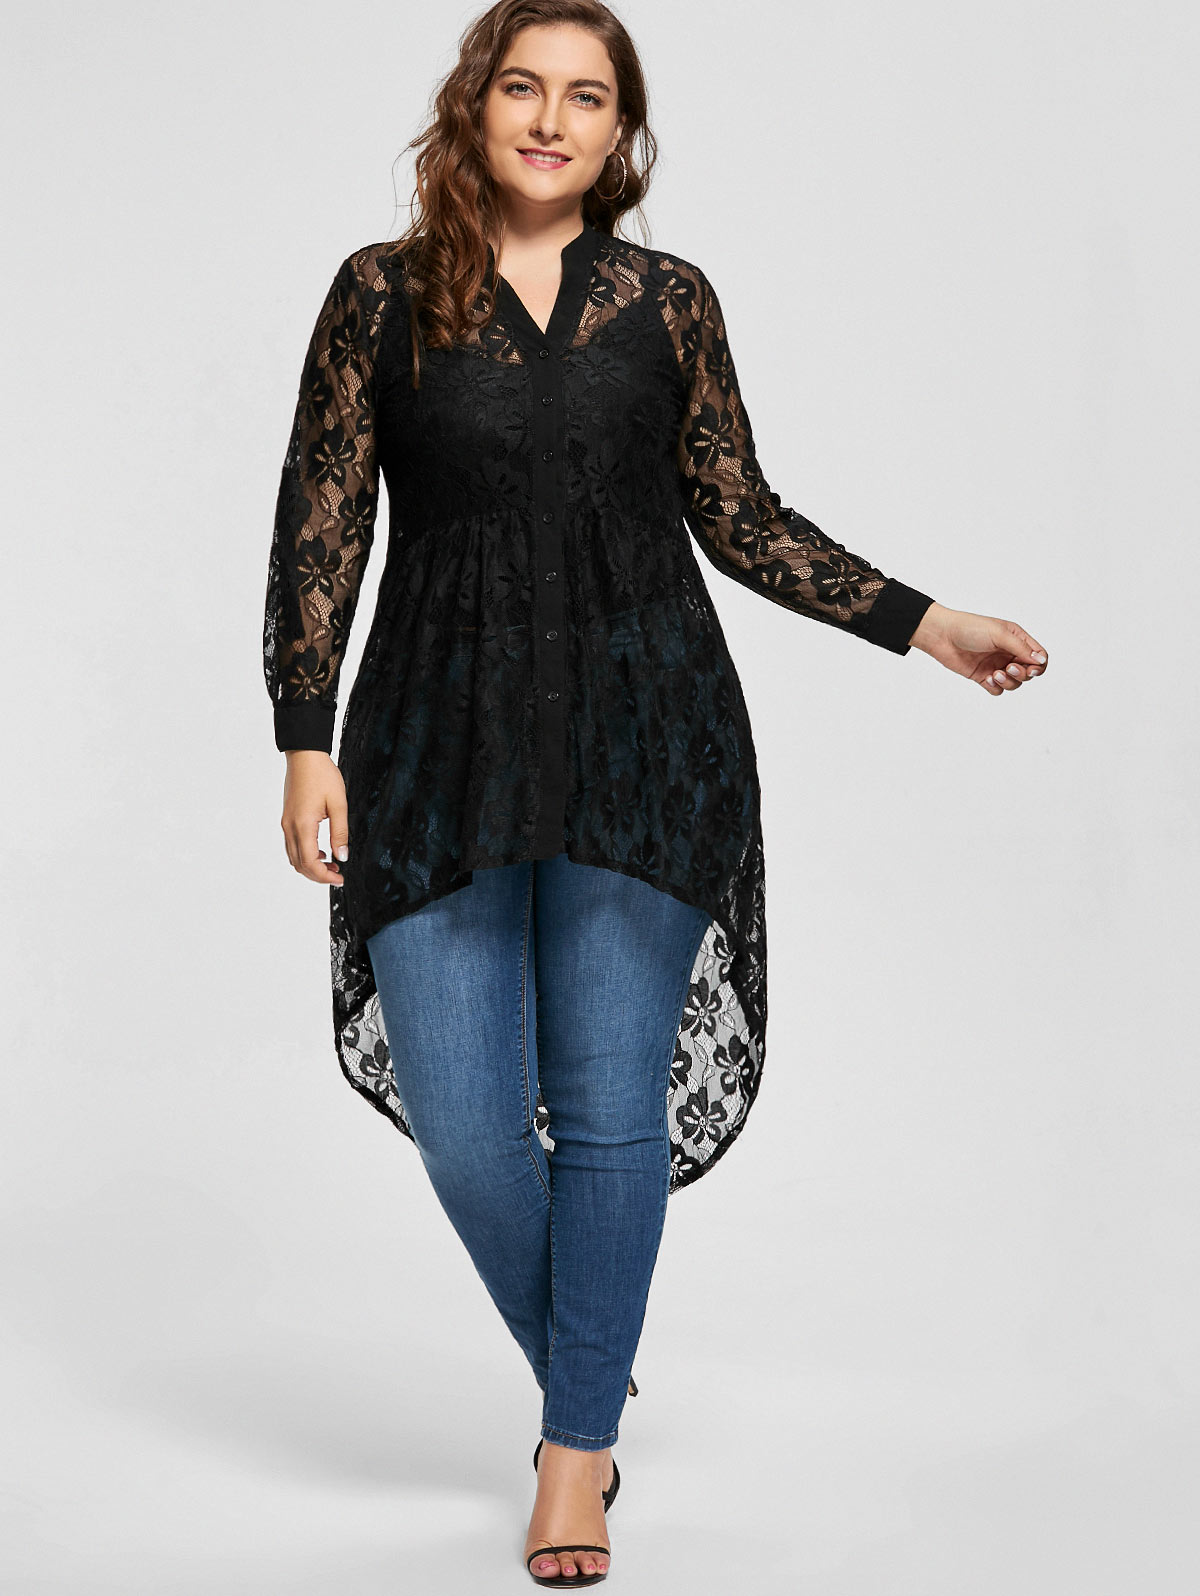 Gamiss Women Plus Size Blouse Spring Autumn Long Sleeve High Low Lace Shirts See Through Button Up Ladies Big Size Female Tops Блузка